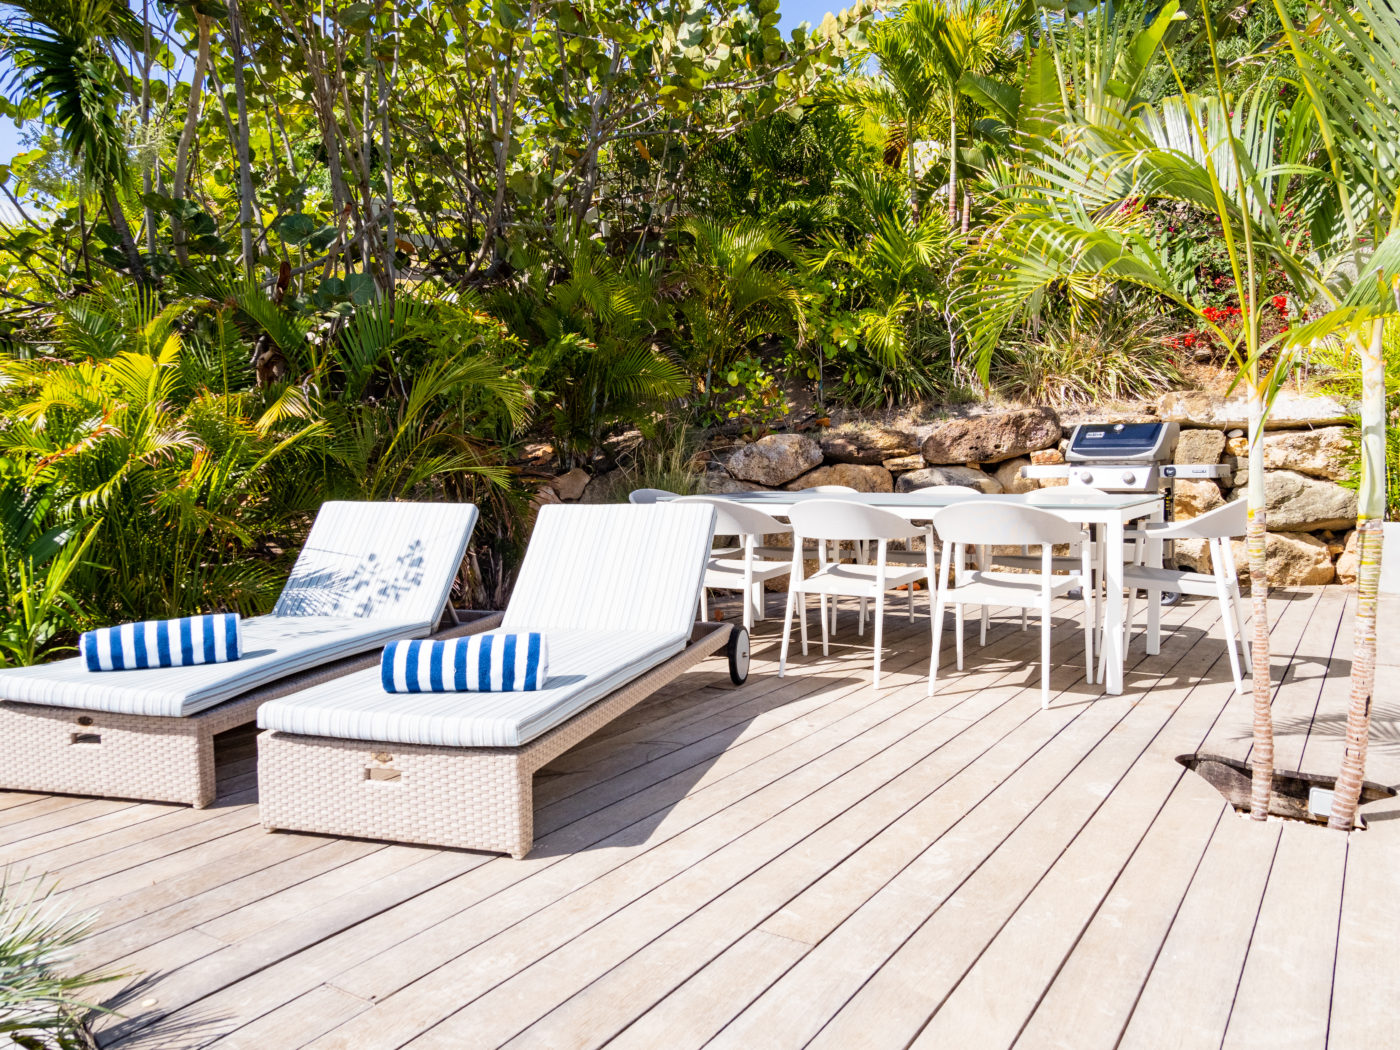 location-saint-barth-mirande-Pointe-Milou-48